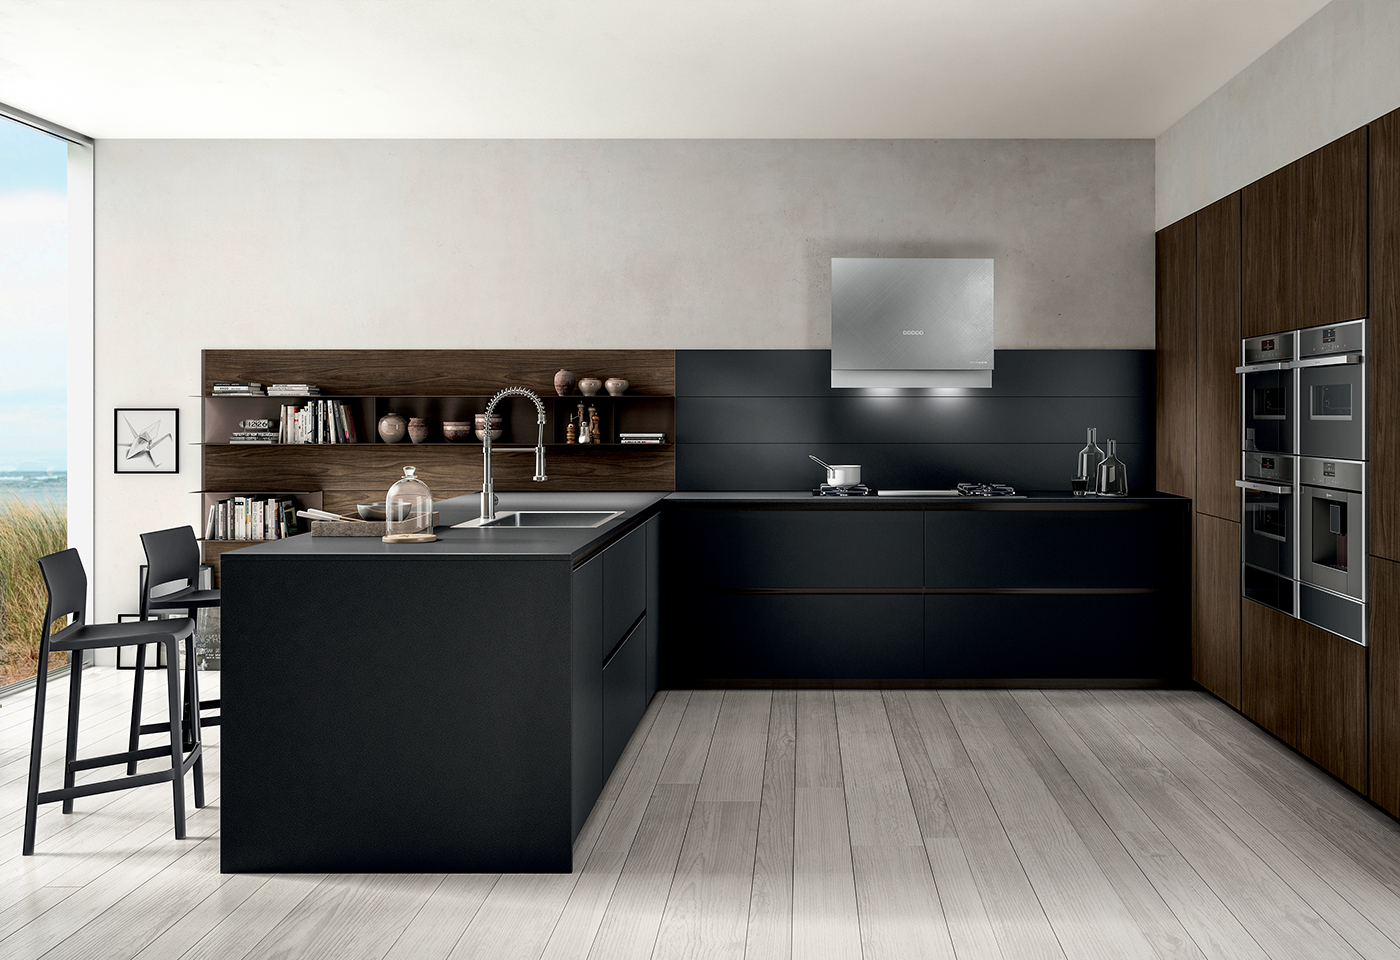 Zetasei by Arredo3, the exemplary contemporary kitchen